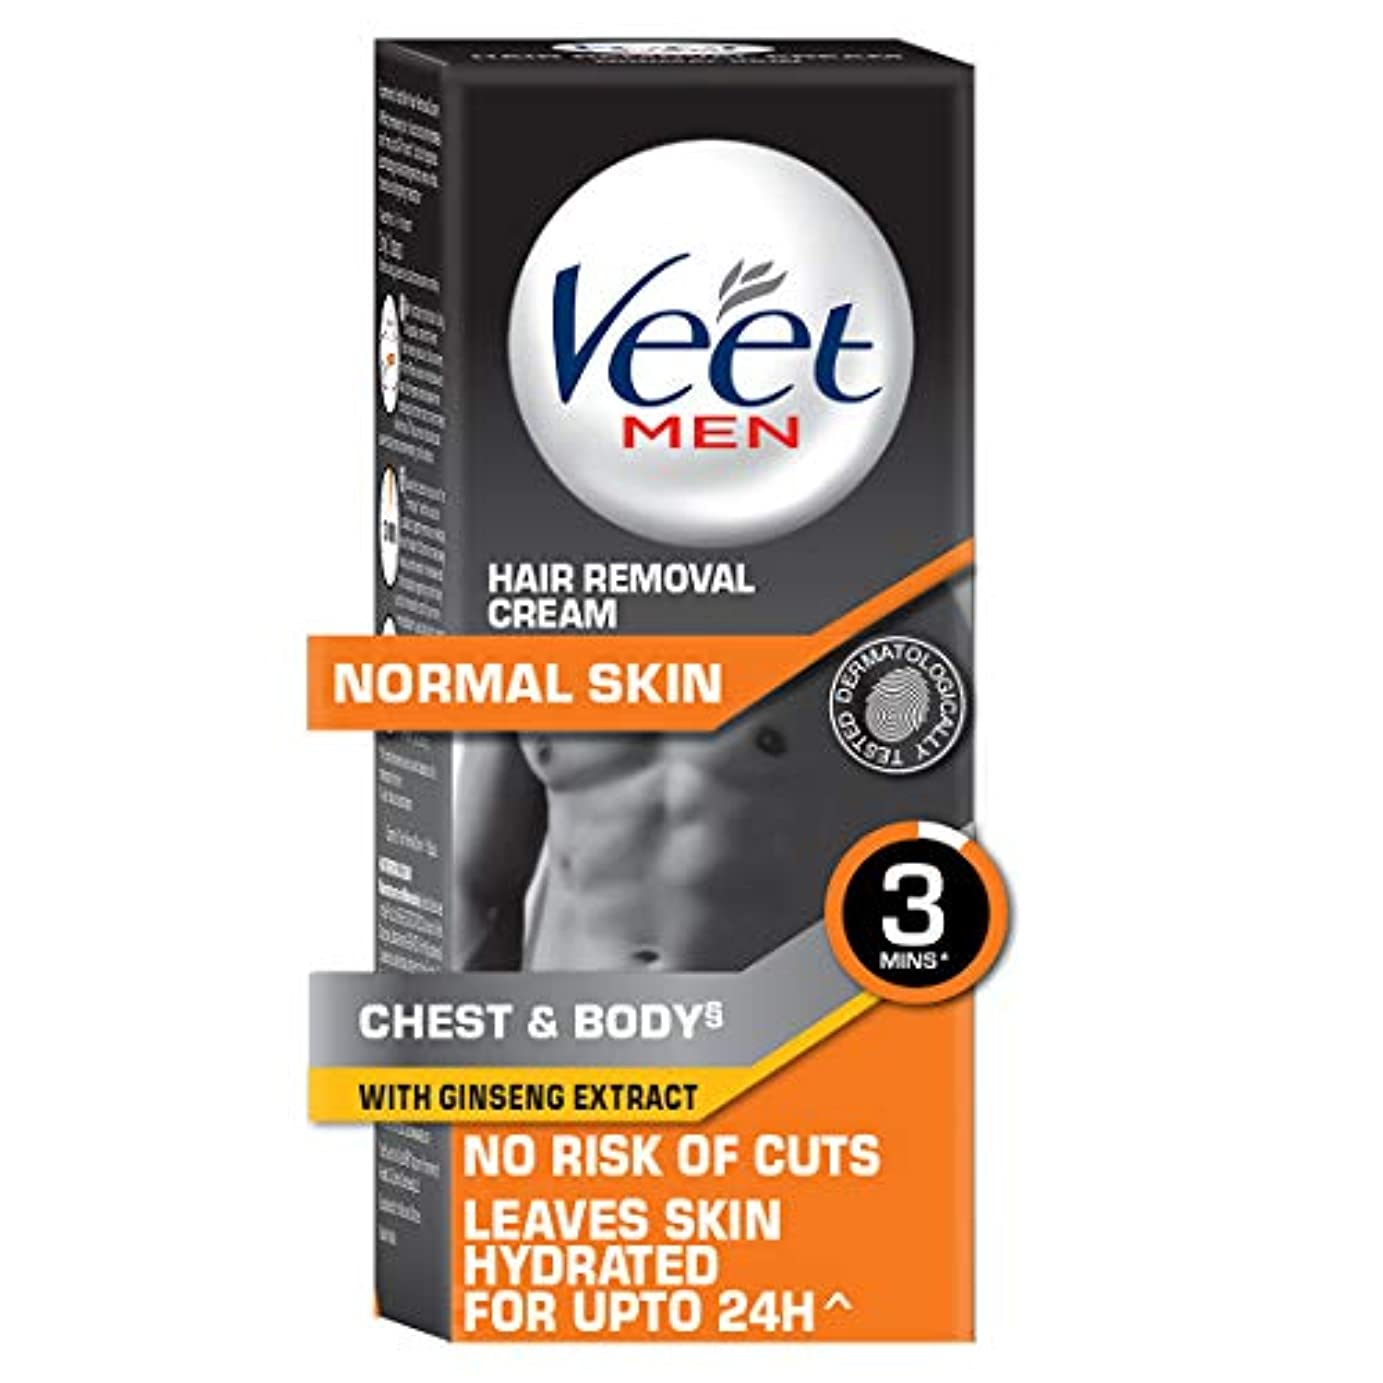 コンセンサス飲み込むポーチVeet Hair Removal Cream for Men, Normal Skin - 50g